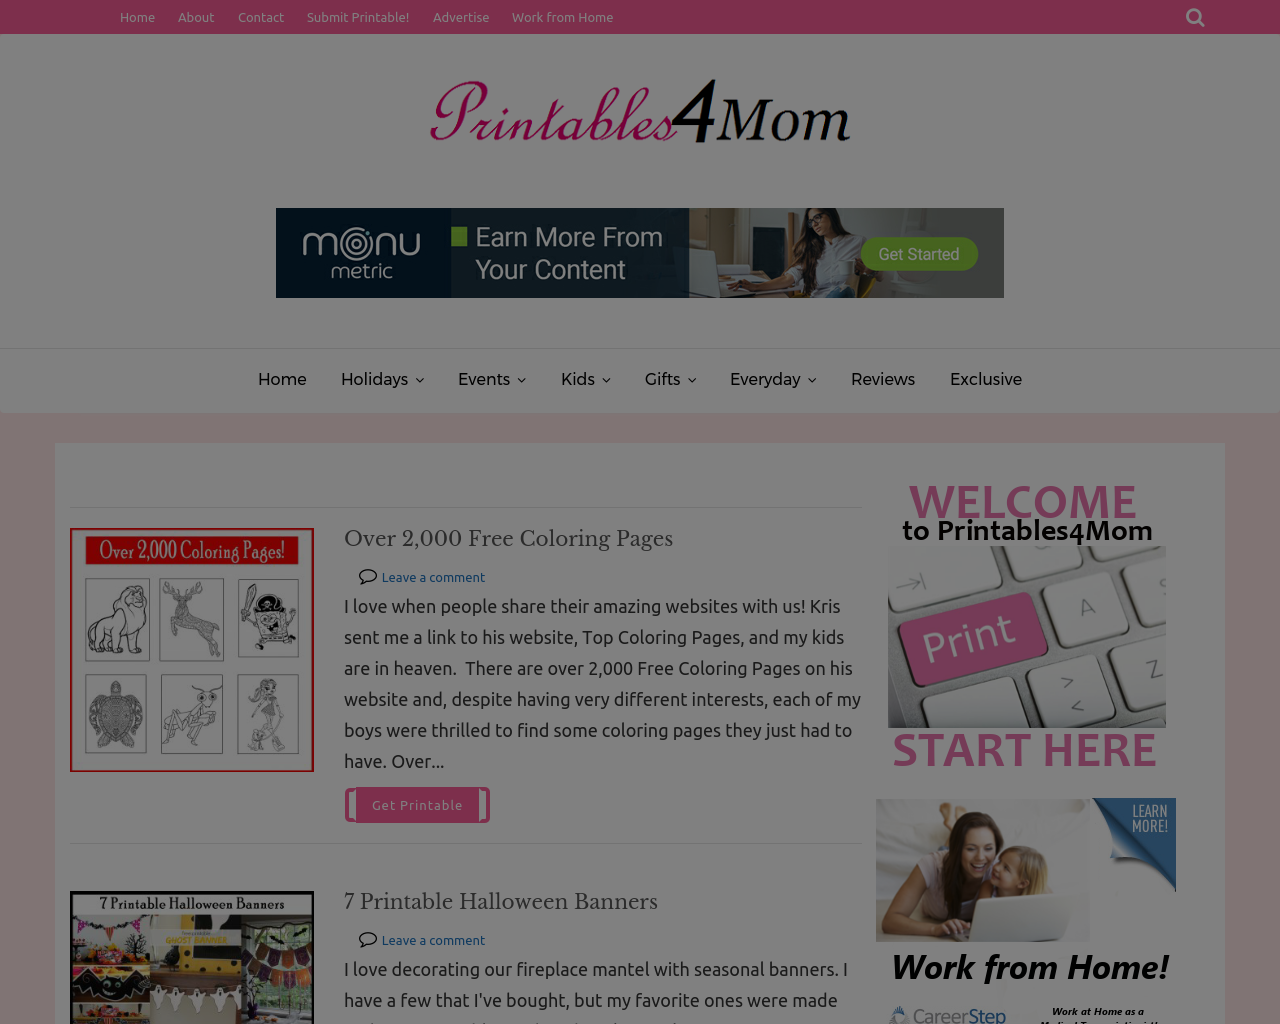 Printables4Mom-Advertising-Reviews-Pricing